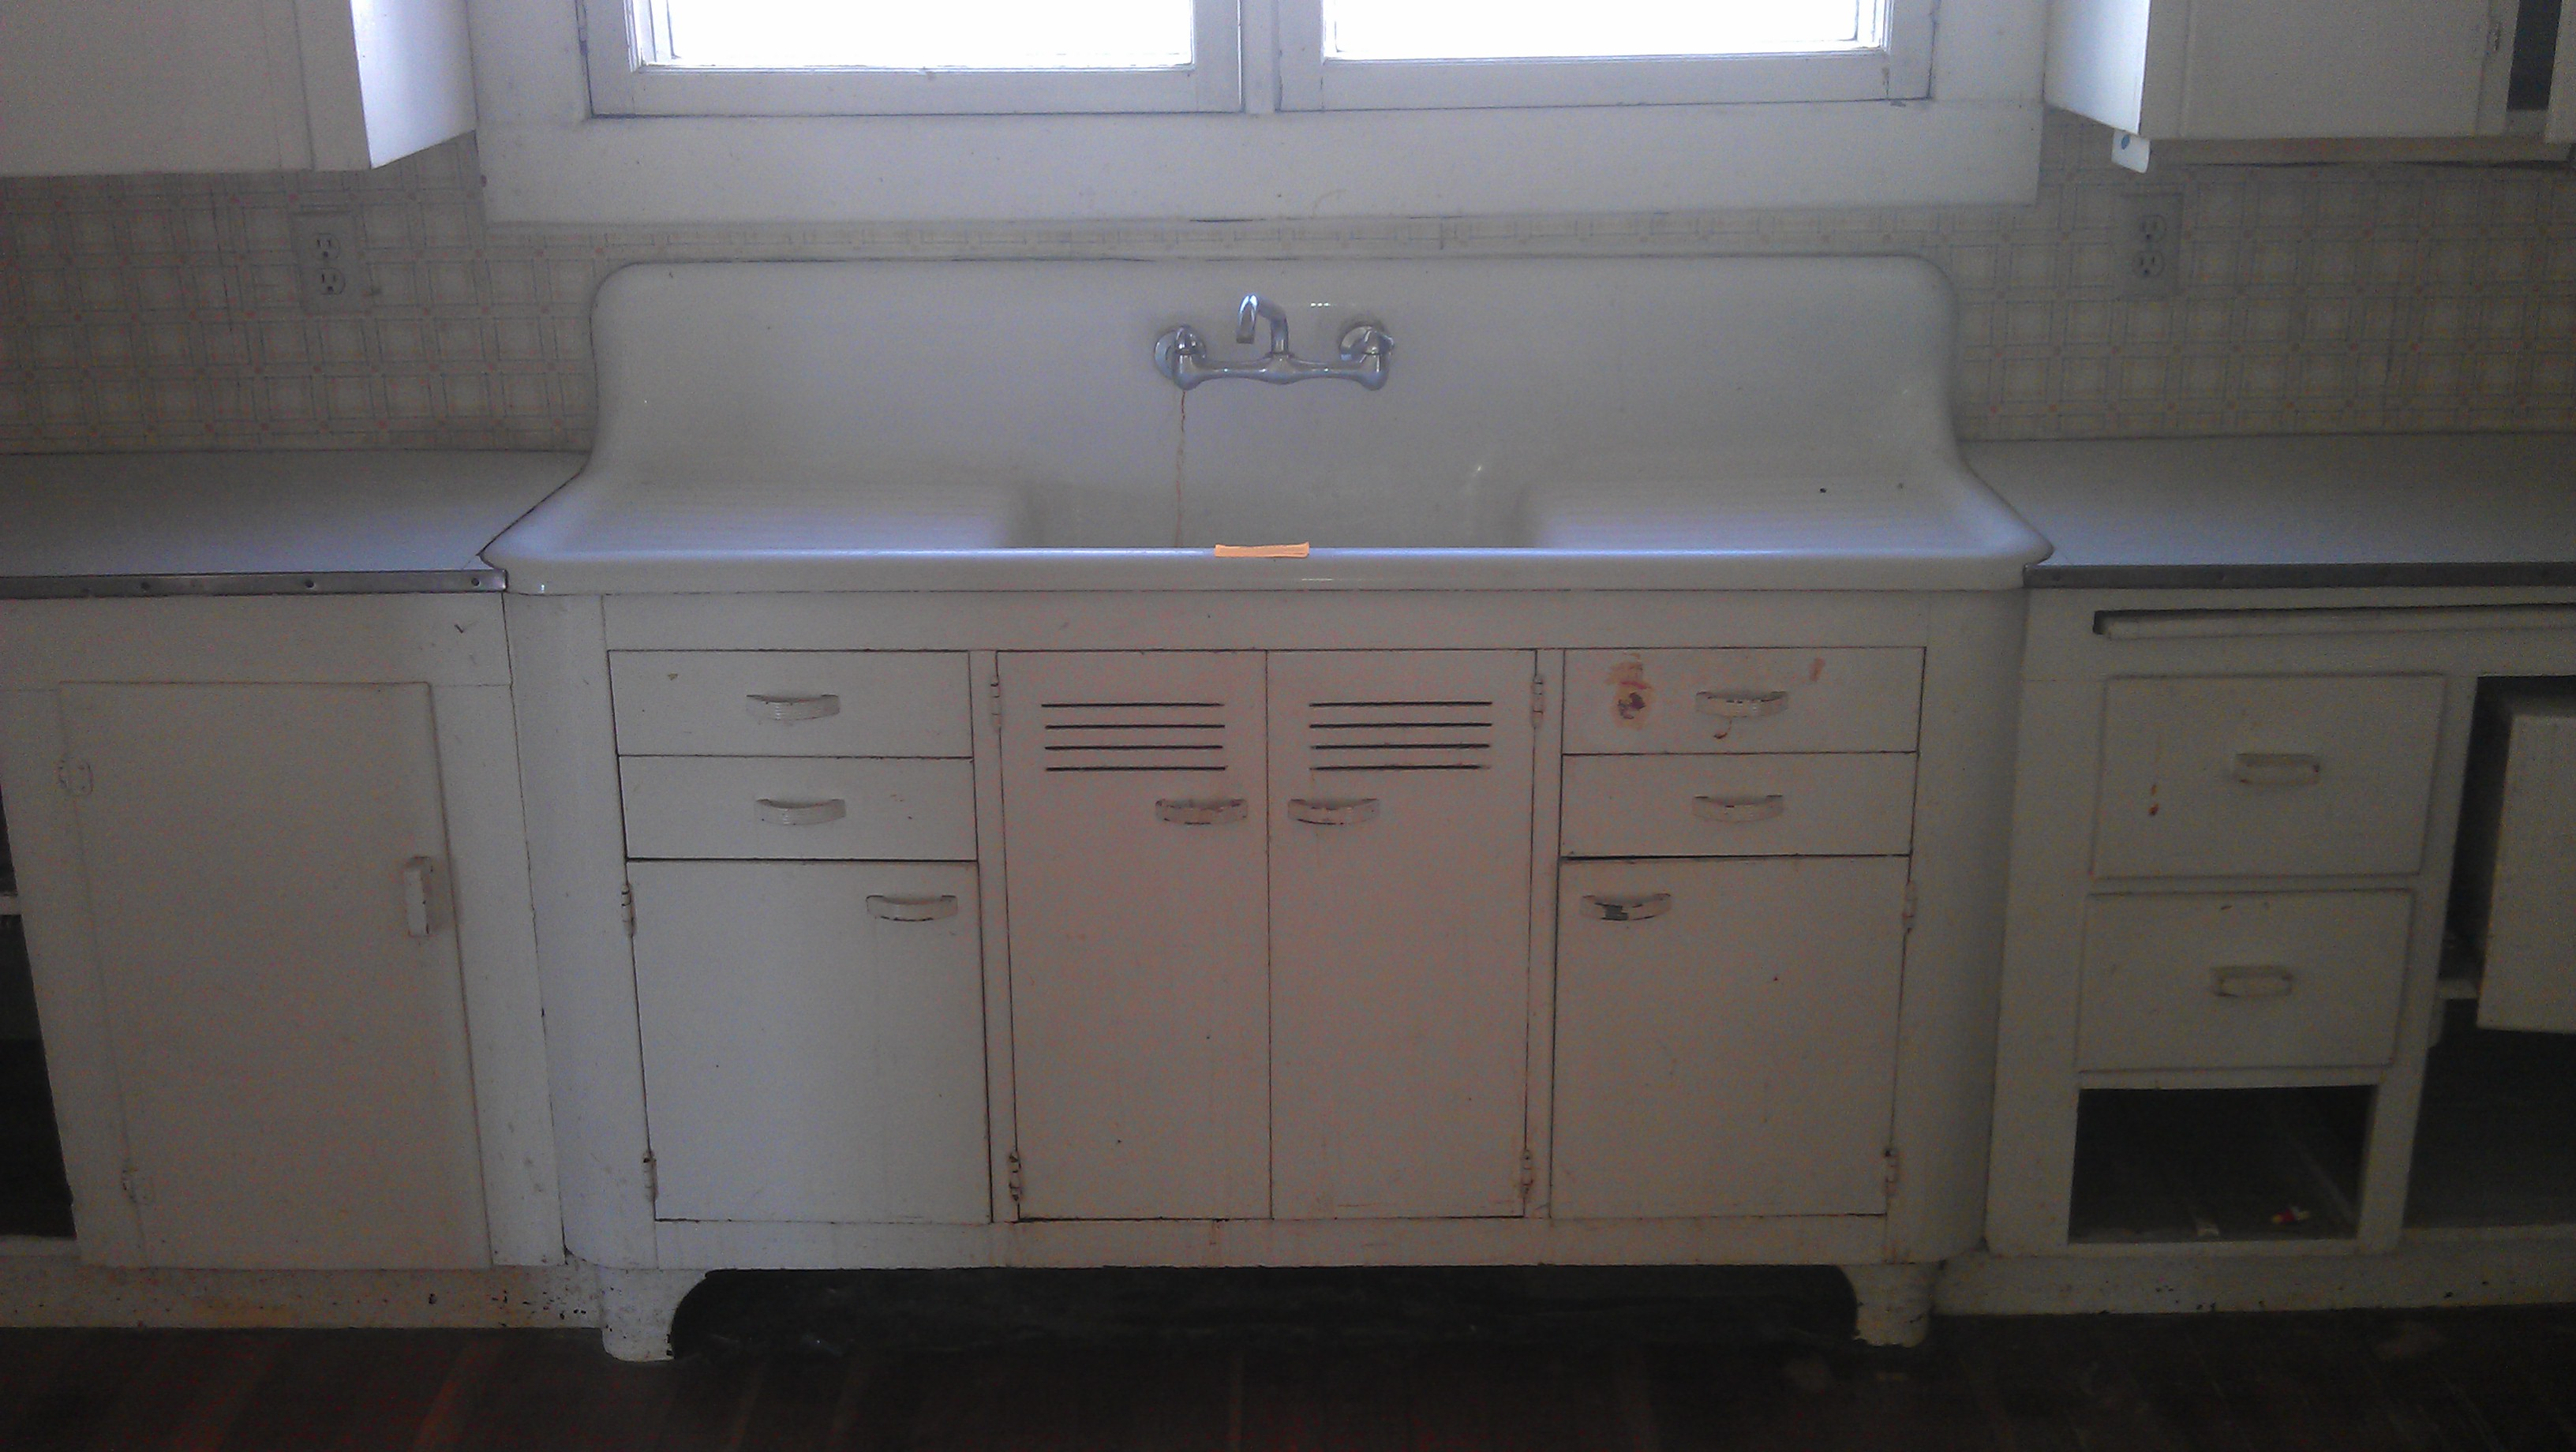 com/antique-appraisal/1940-1950-most-likely-double-drainboard-sink